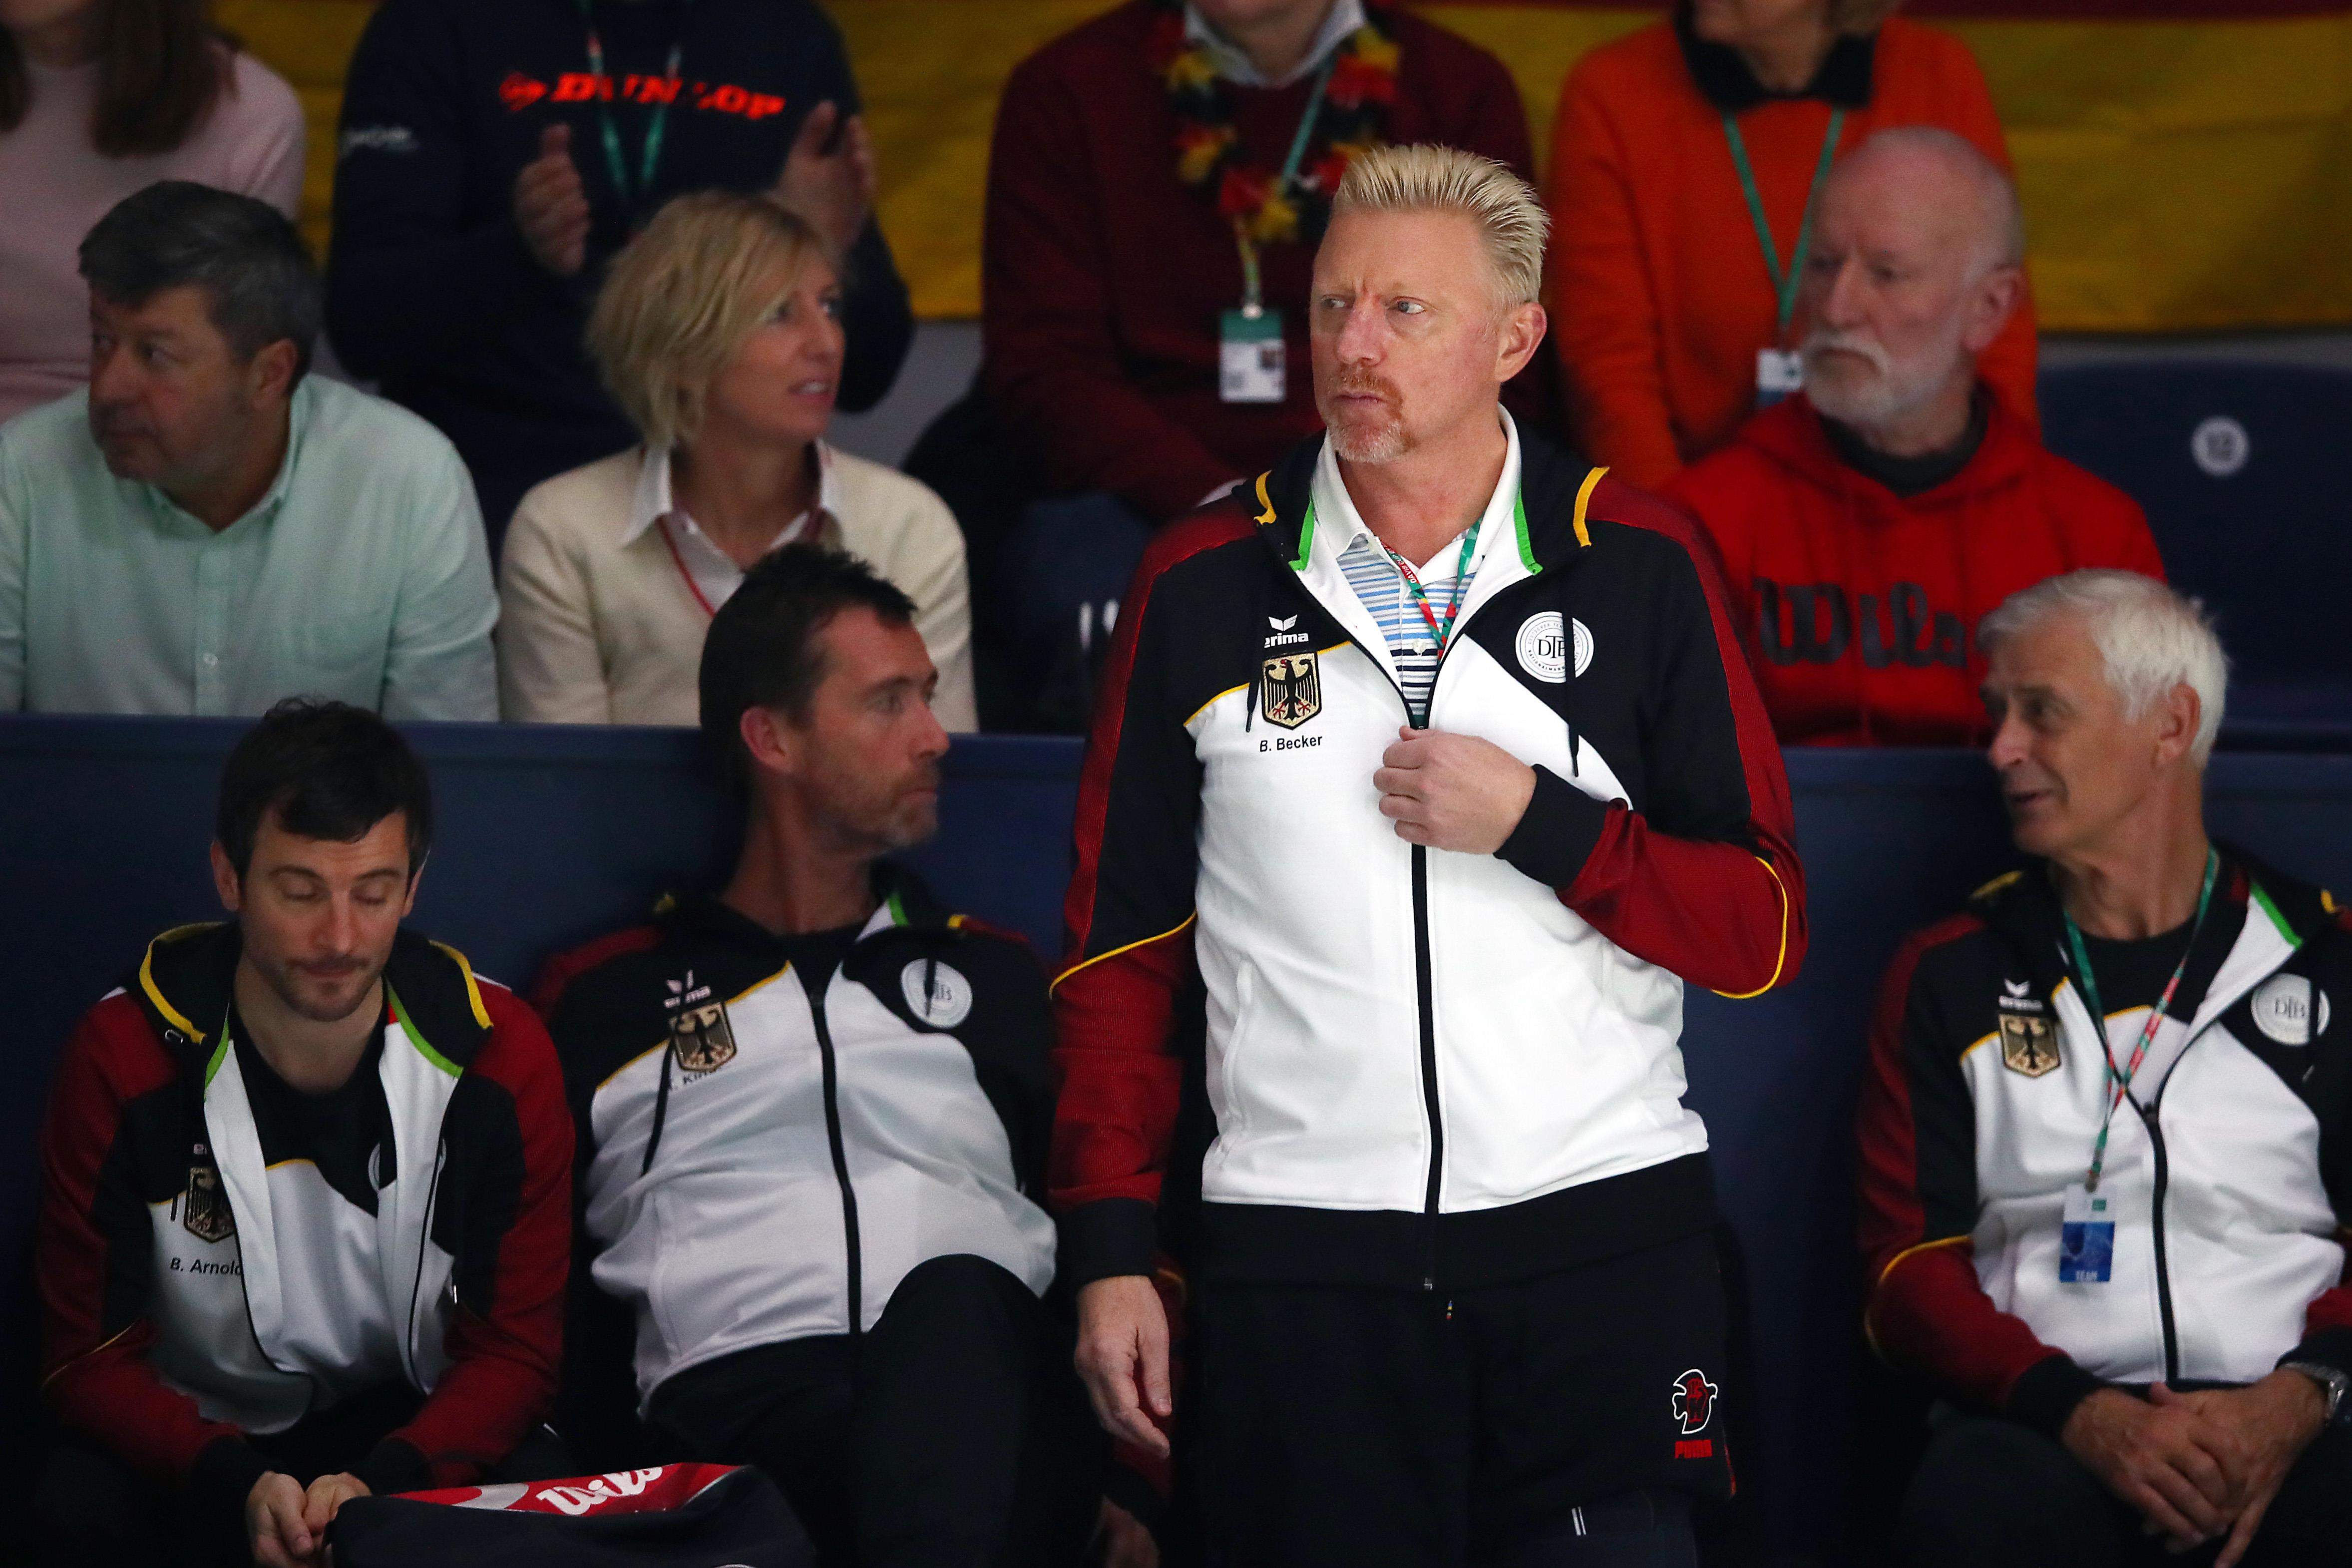 Bankrupt Becker 'Failed To Hand Over Trophies'